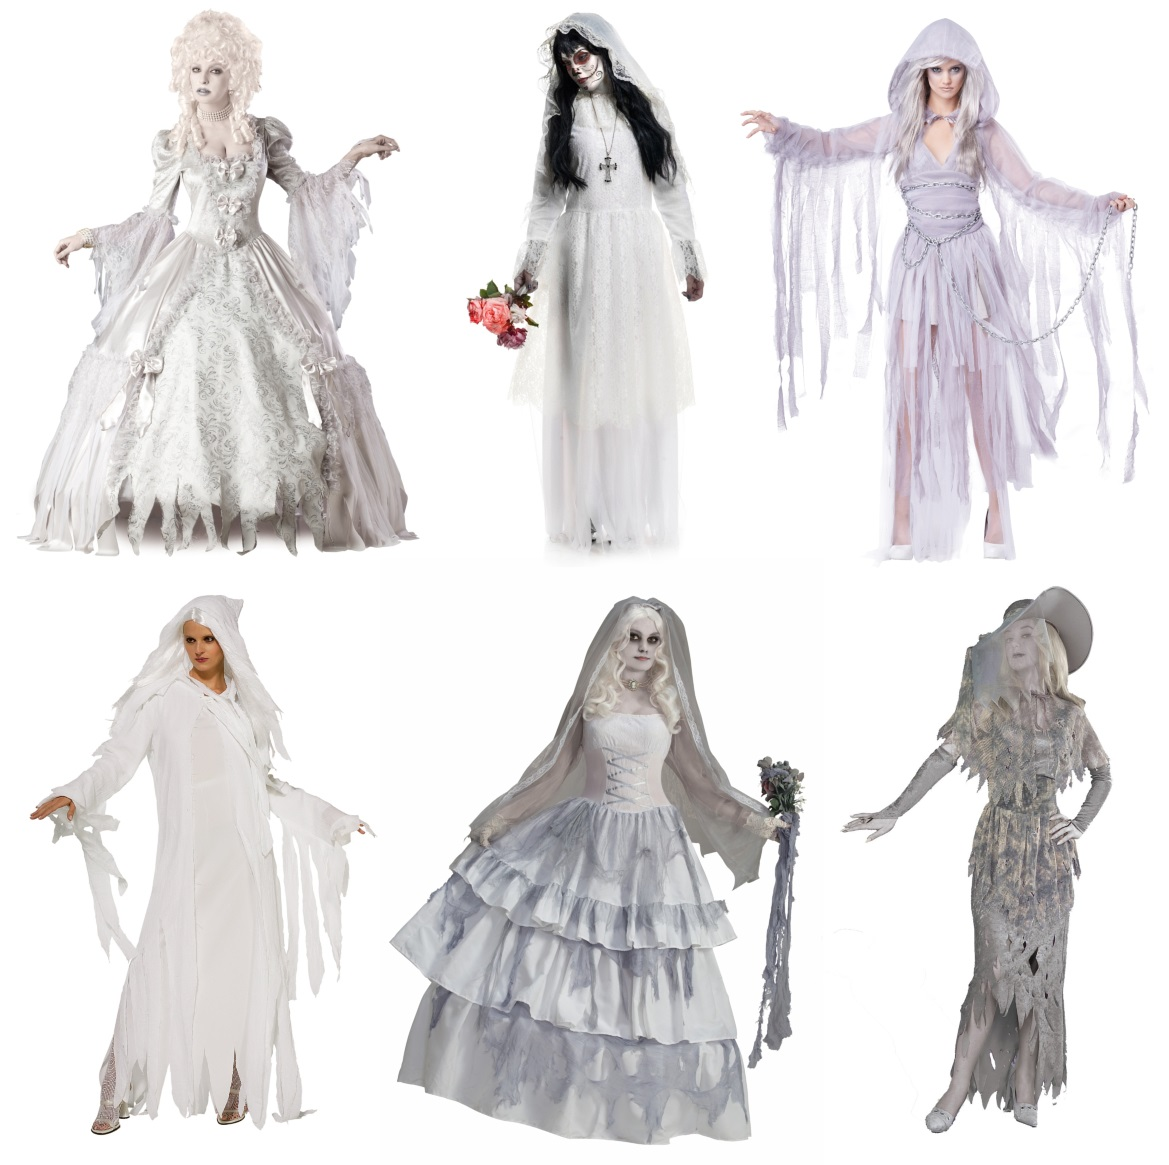 Ghastly Ghost Costumes for Women